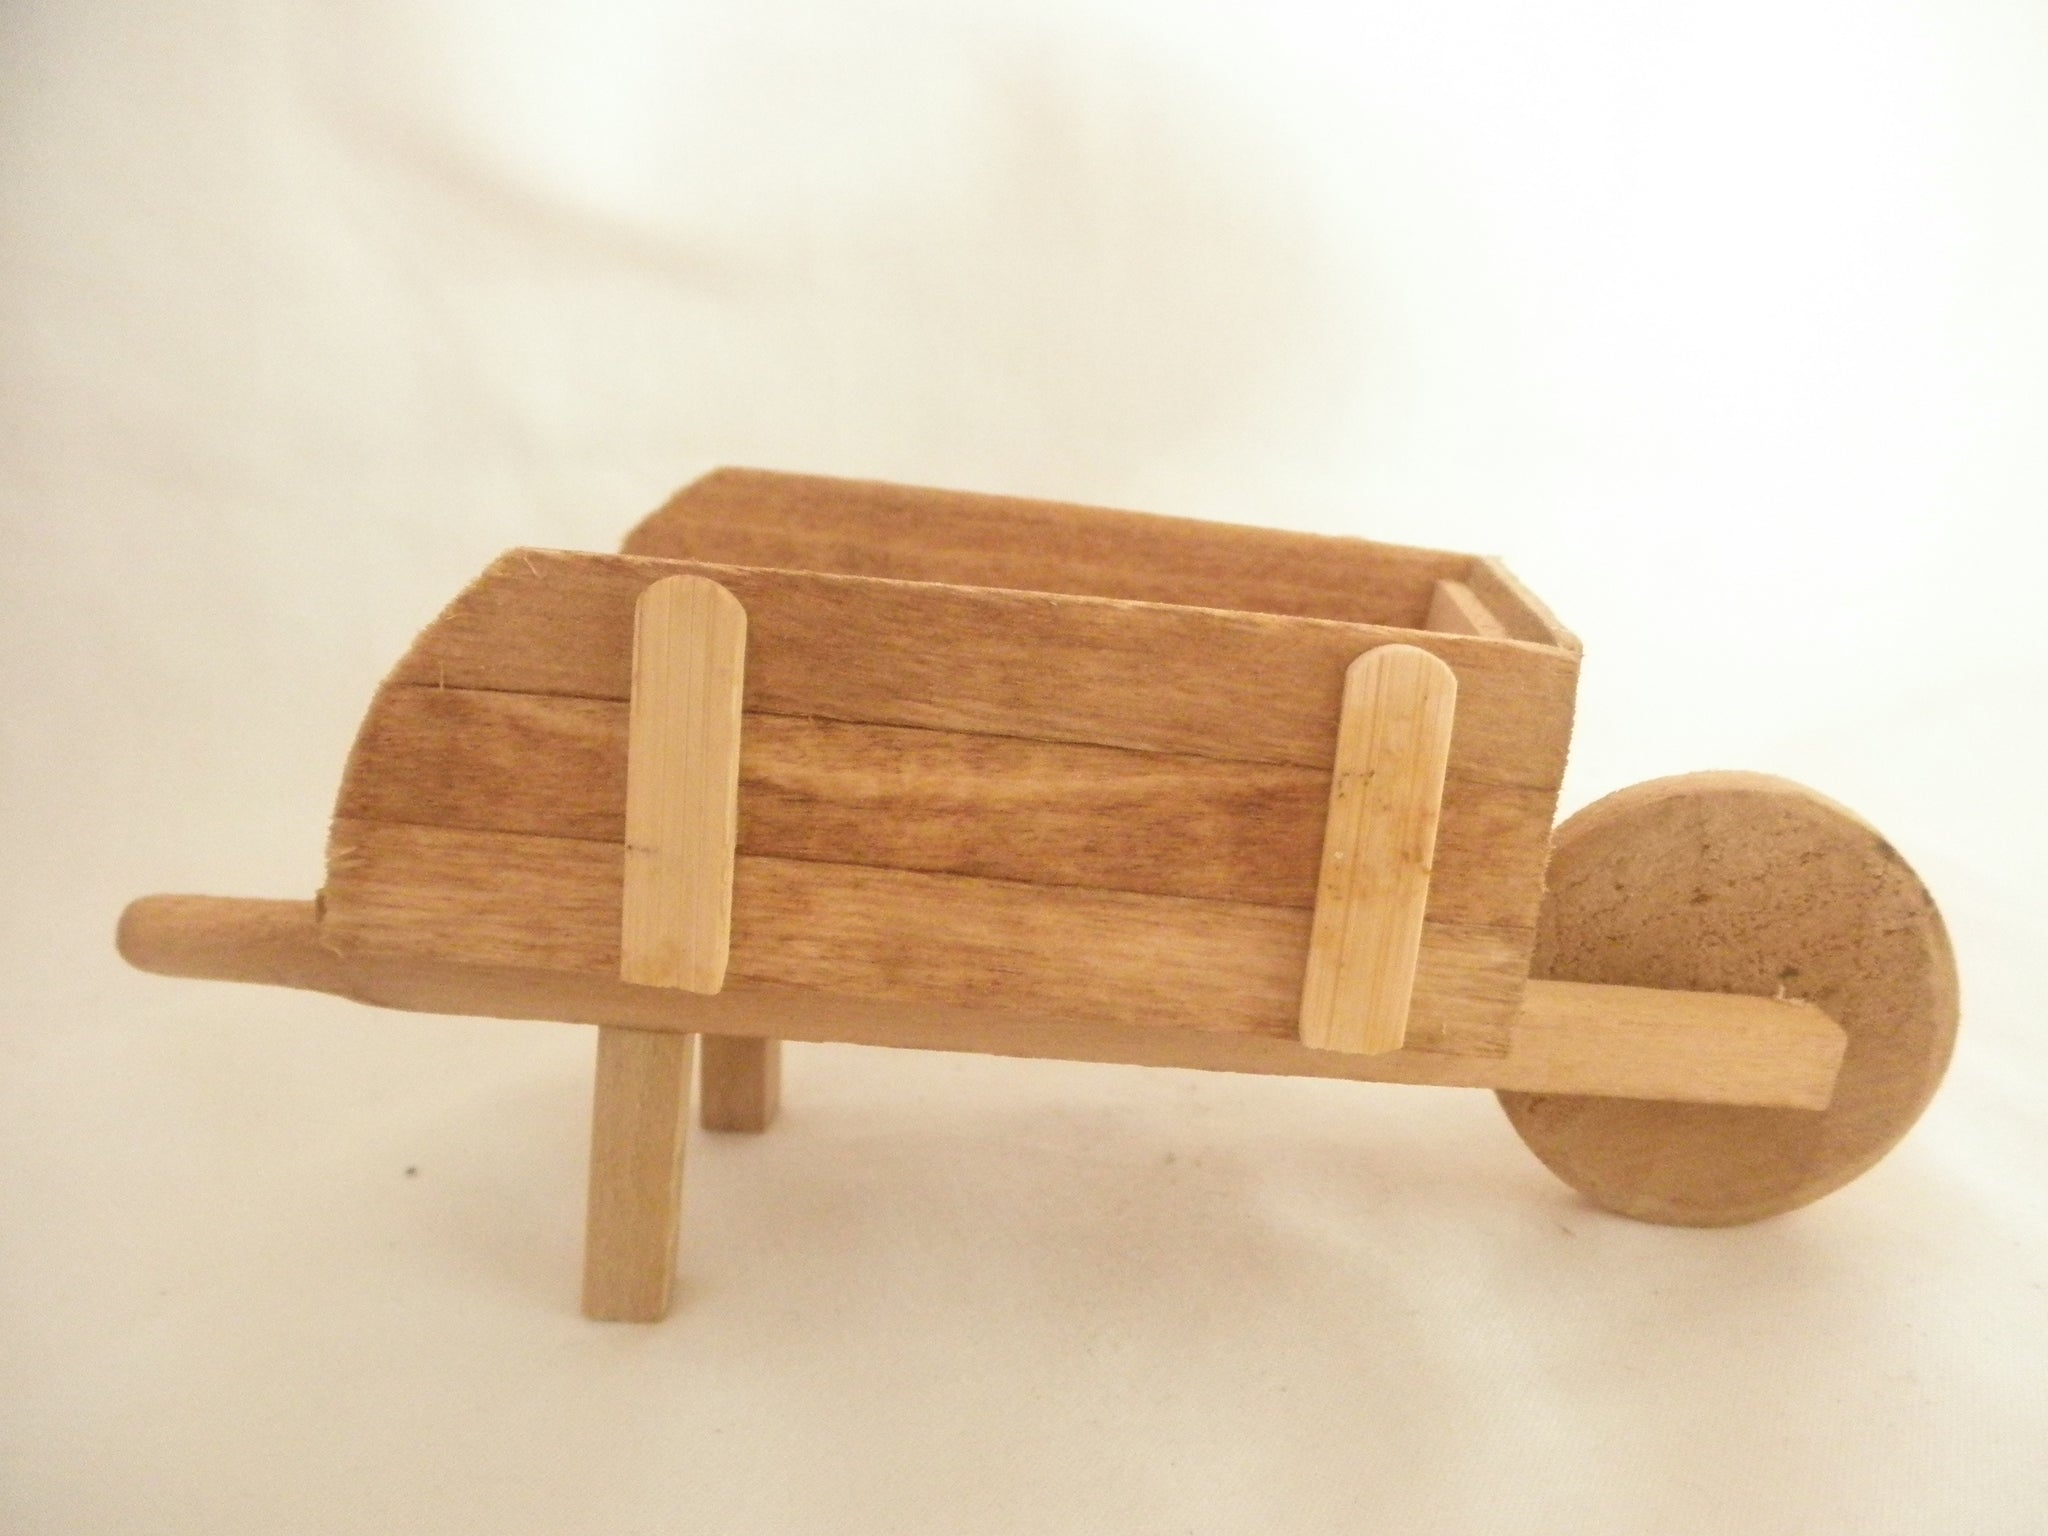 Miniature wood wheel barrel - Natural pine color